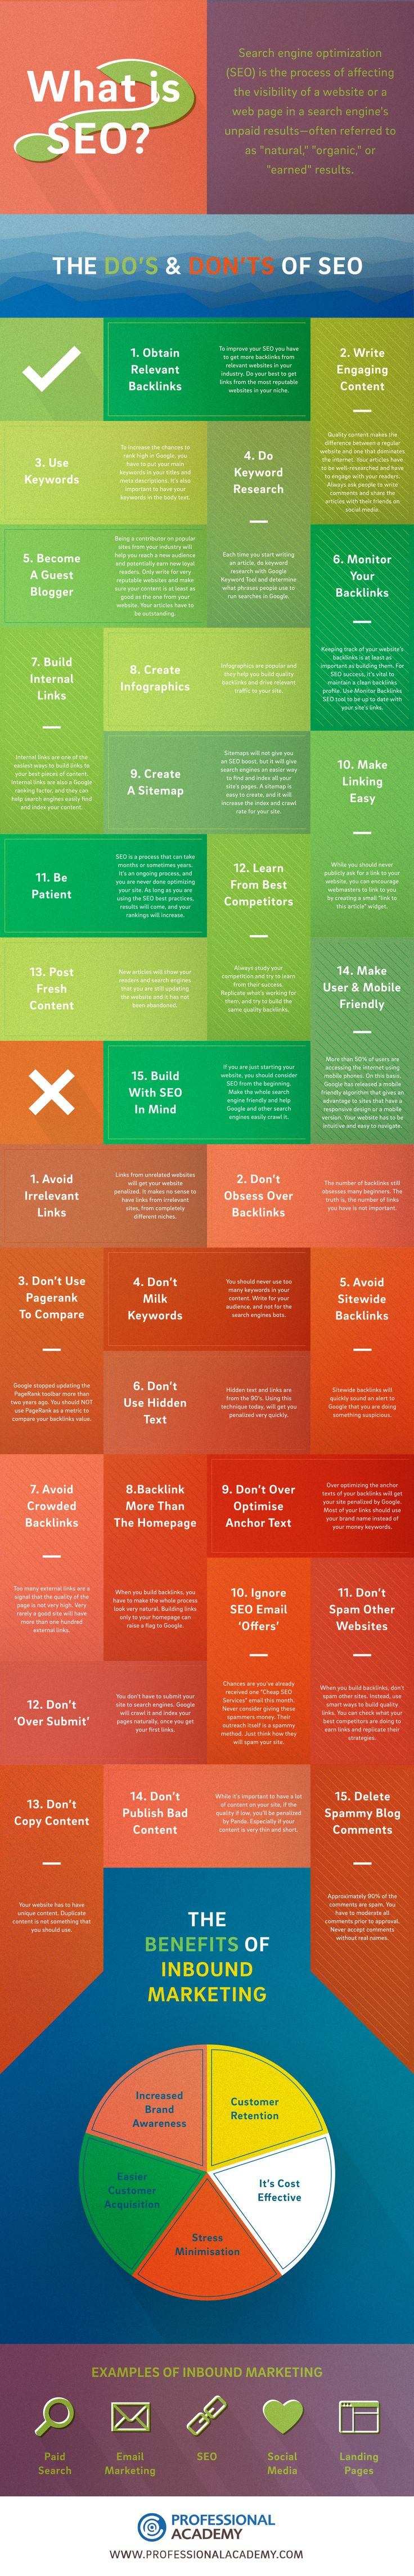 What is SEO? 30 Do's and Don'ts of SEO - infographic - Professional Academy